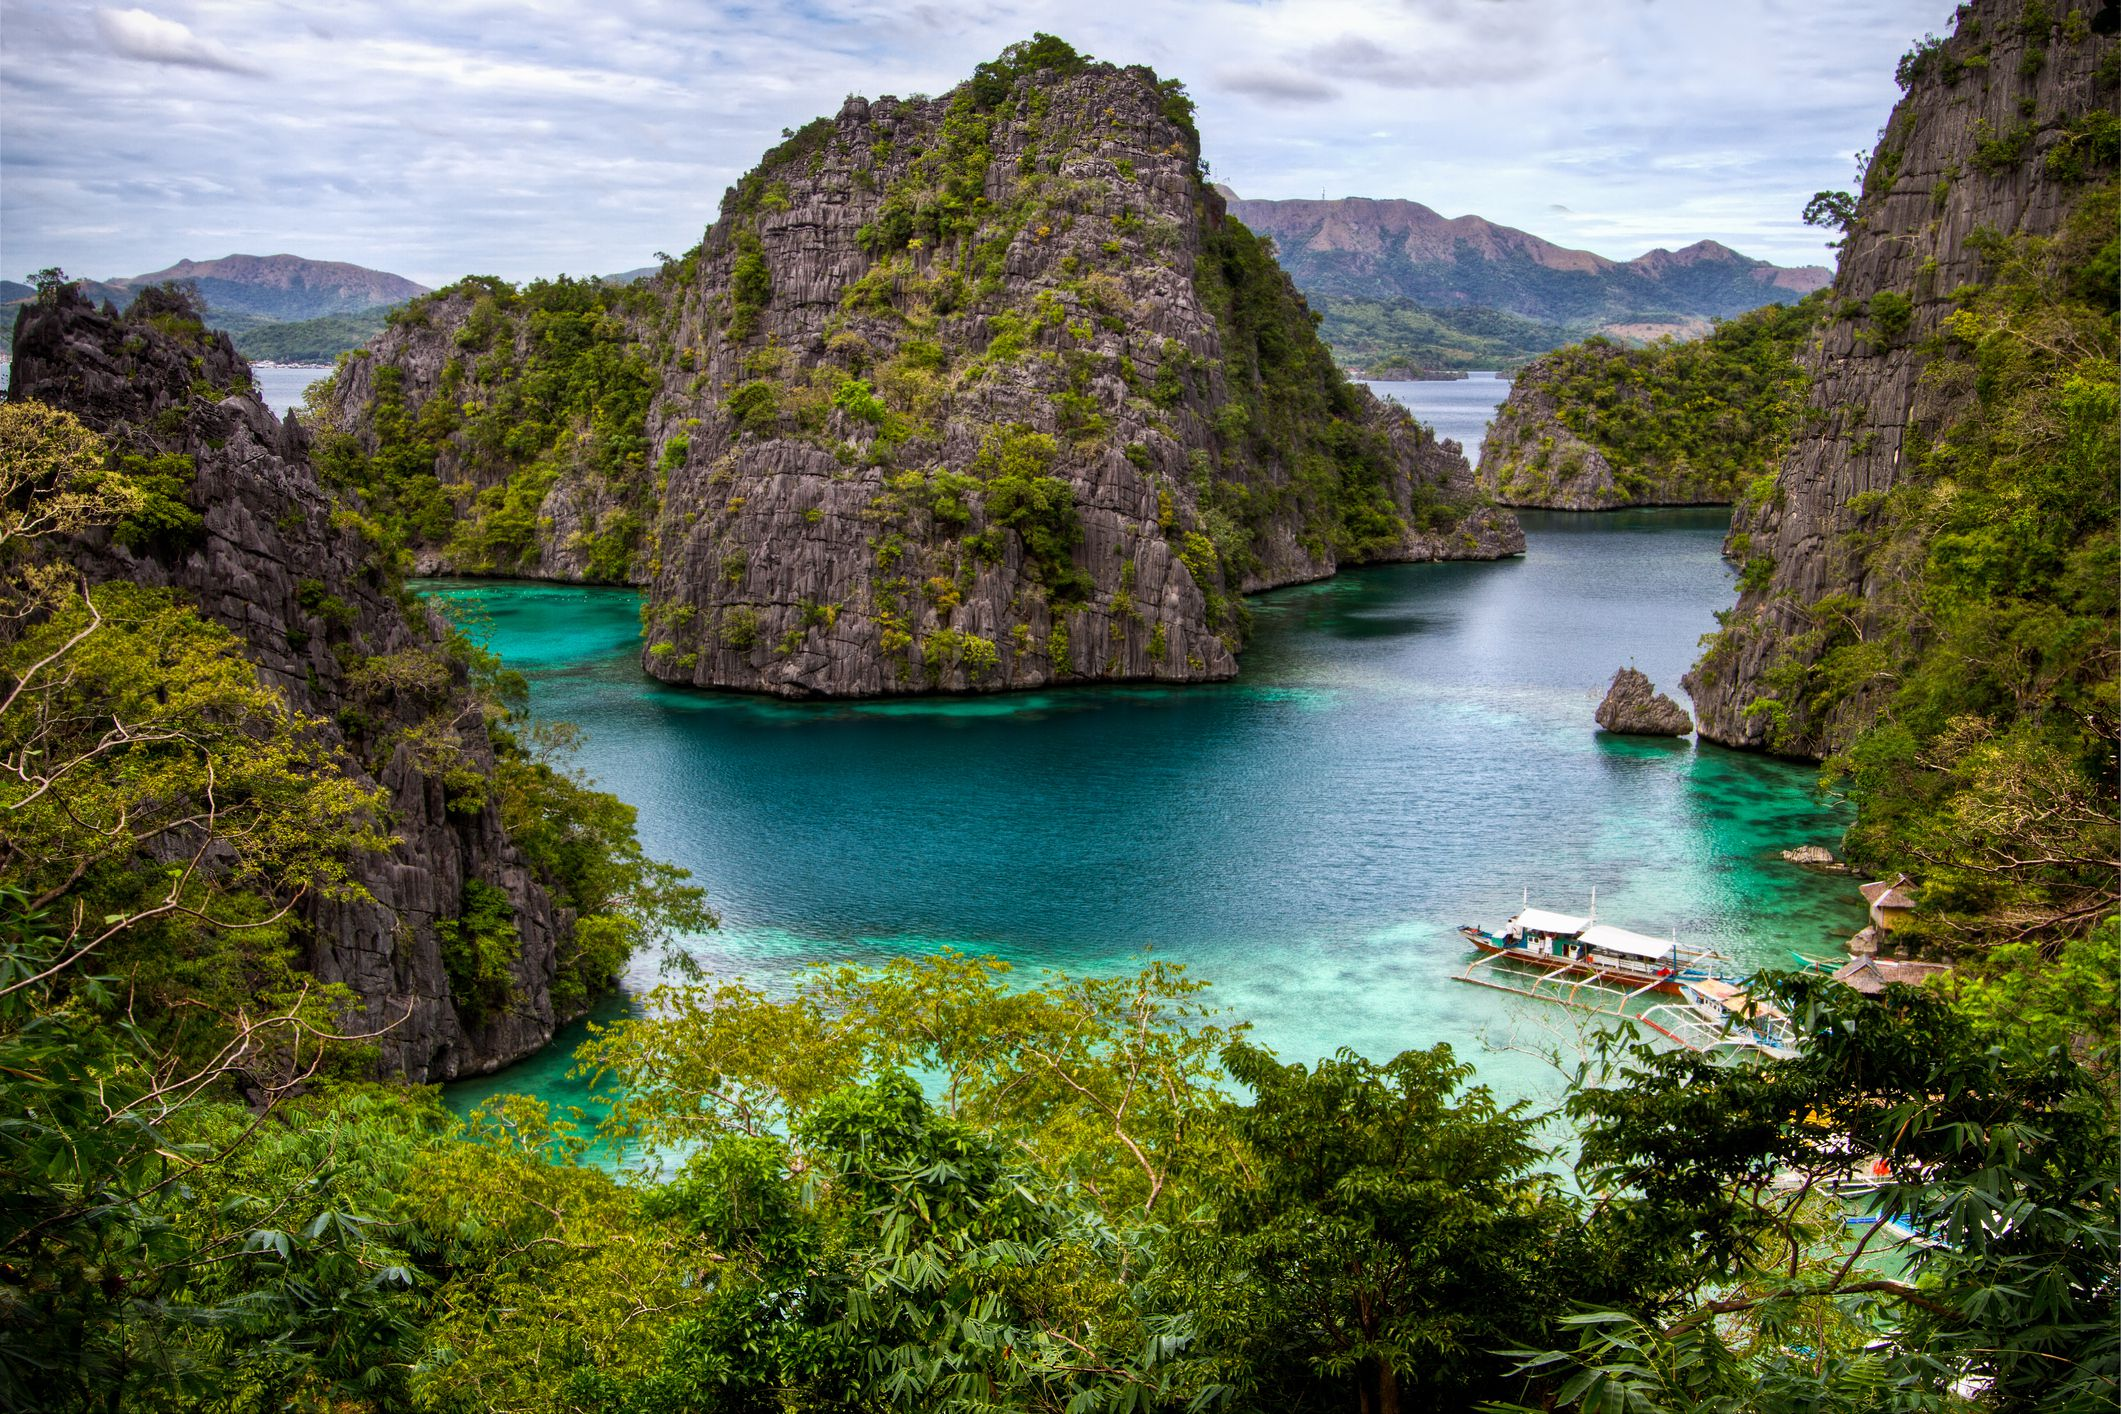 The most breathtaking view from the top of the walkway toward the Kayangan Lake